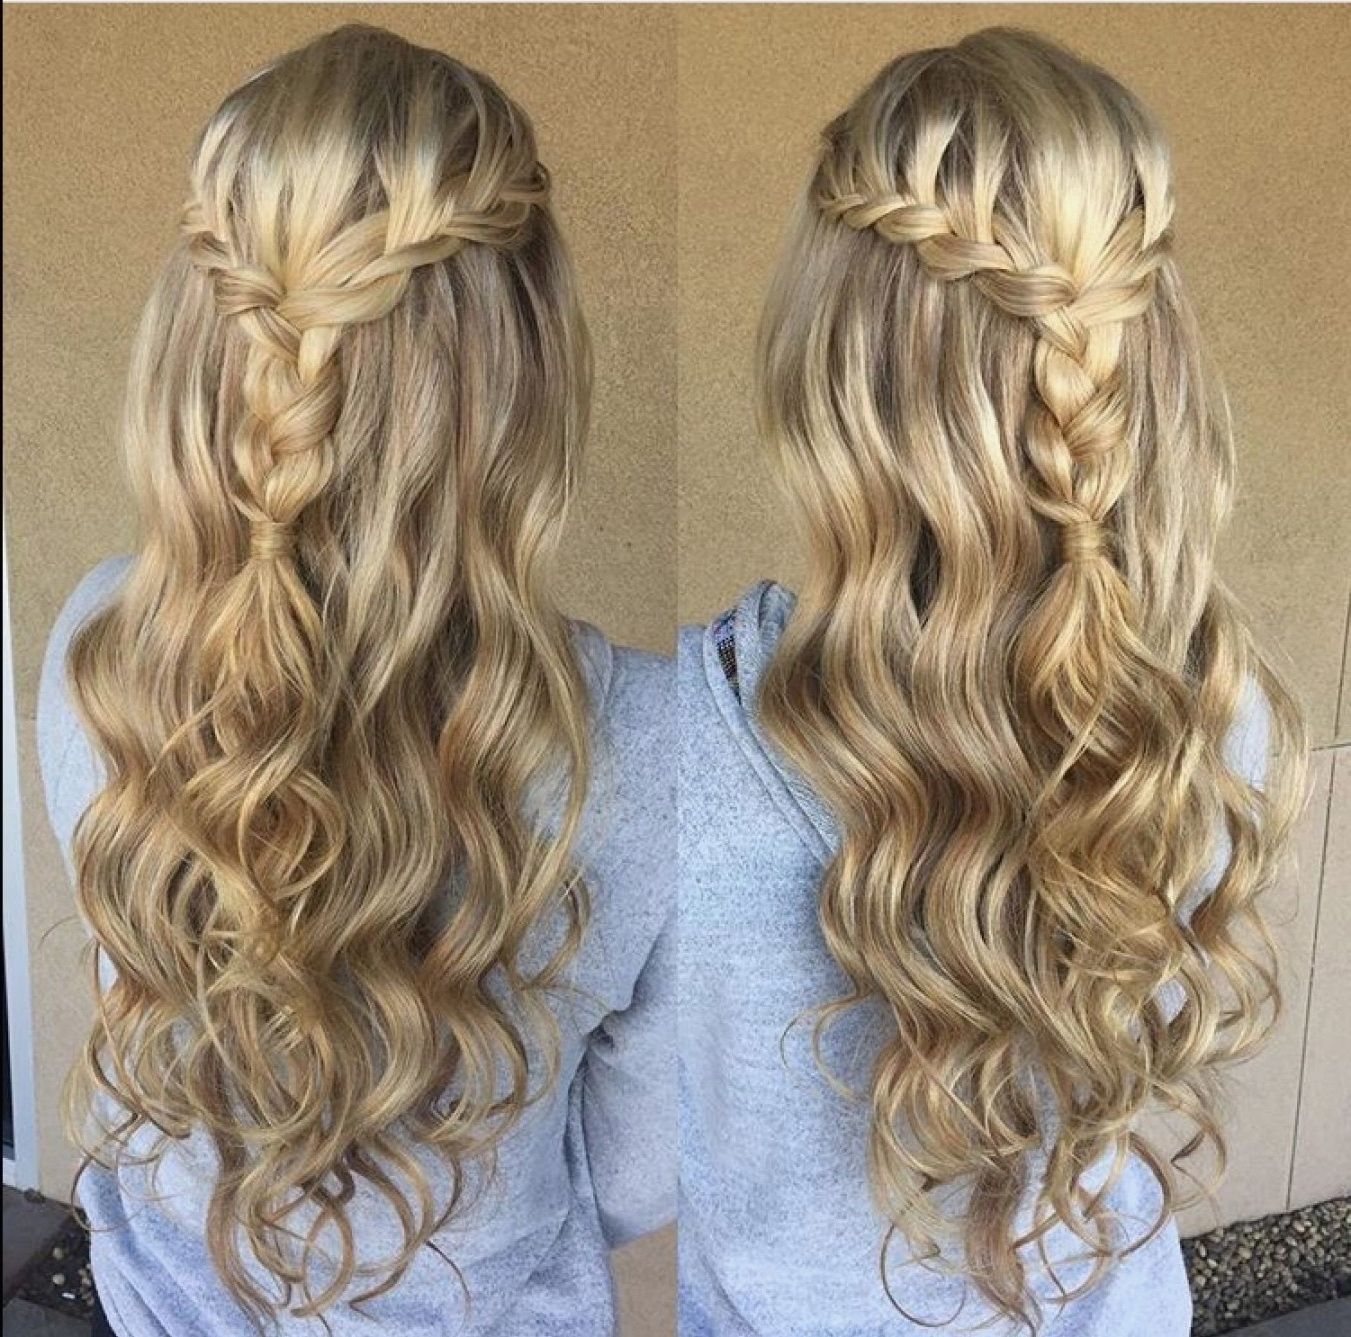 Braid Hairstyles : Cool Half Up Half Down Braided Prom Hairstyles In Pertaining To Trendy Down Braided Hairstyles (View 4 of 15)